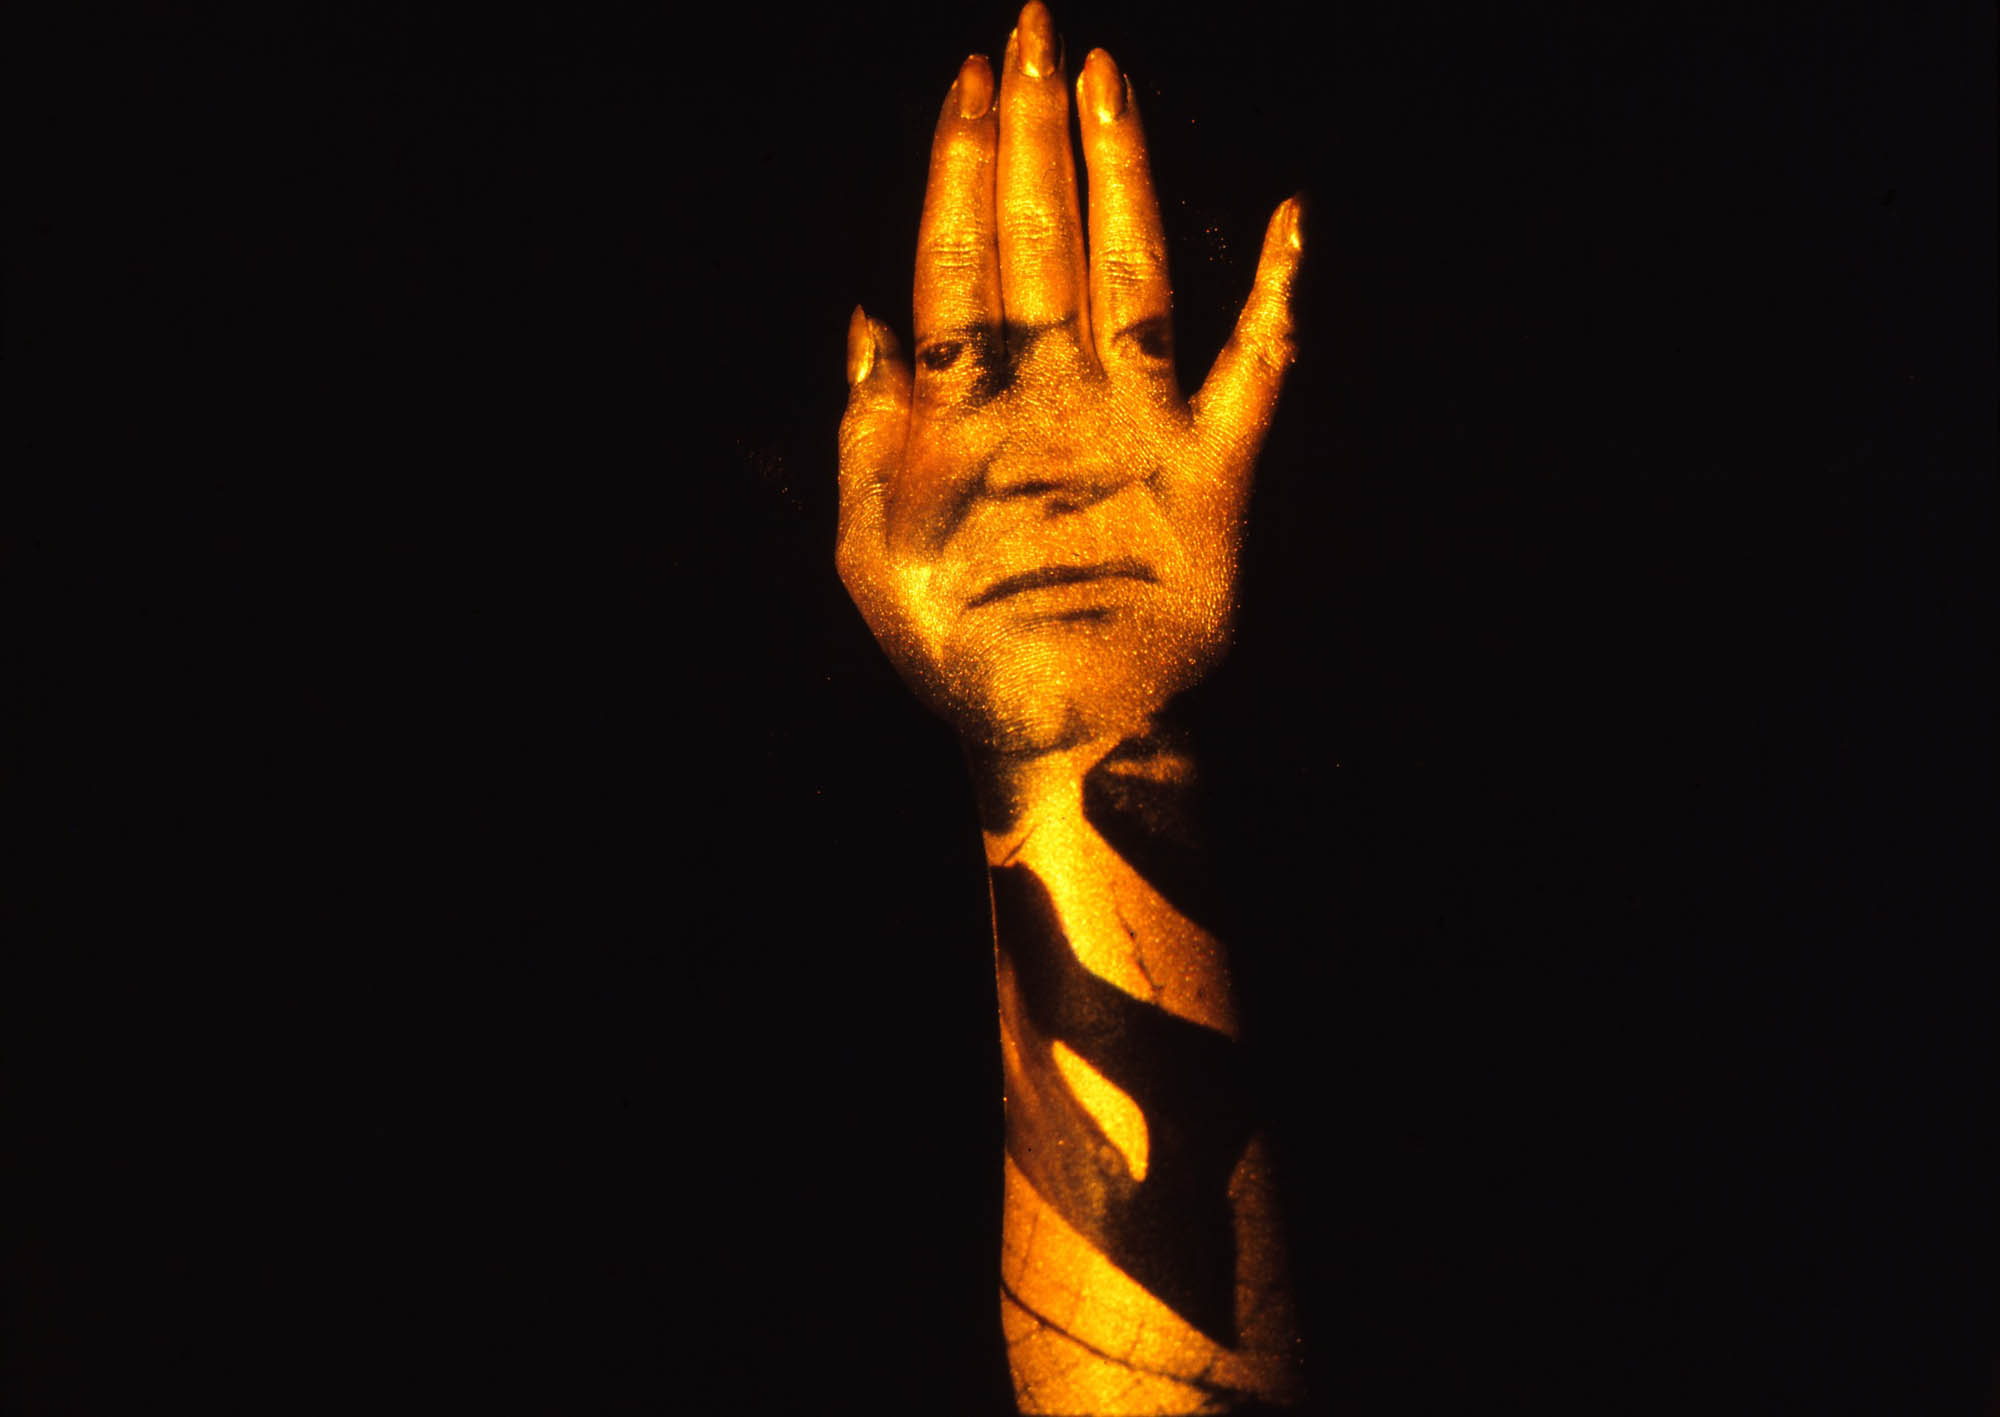 Goldfinger Hand for poster